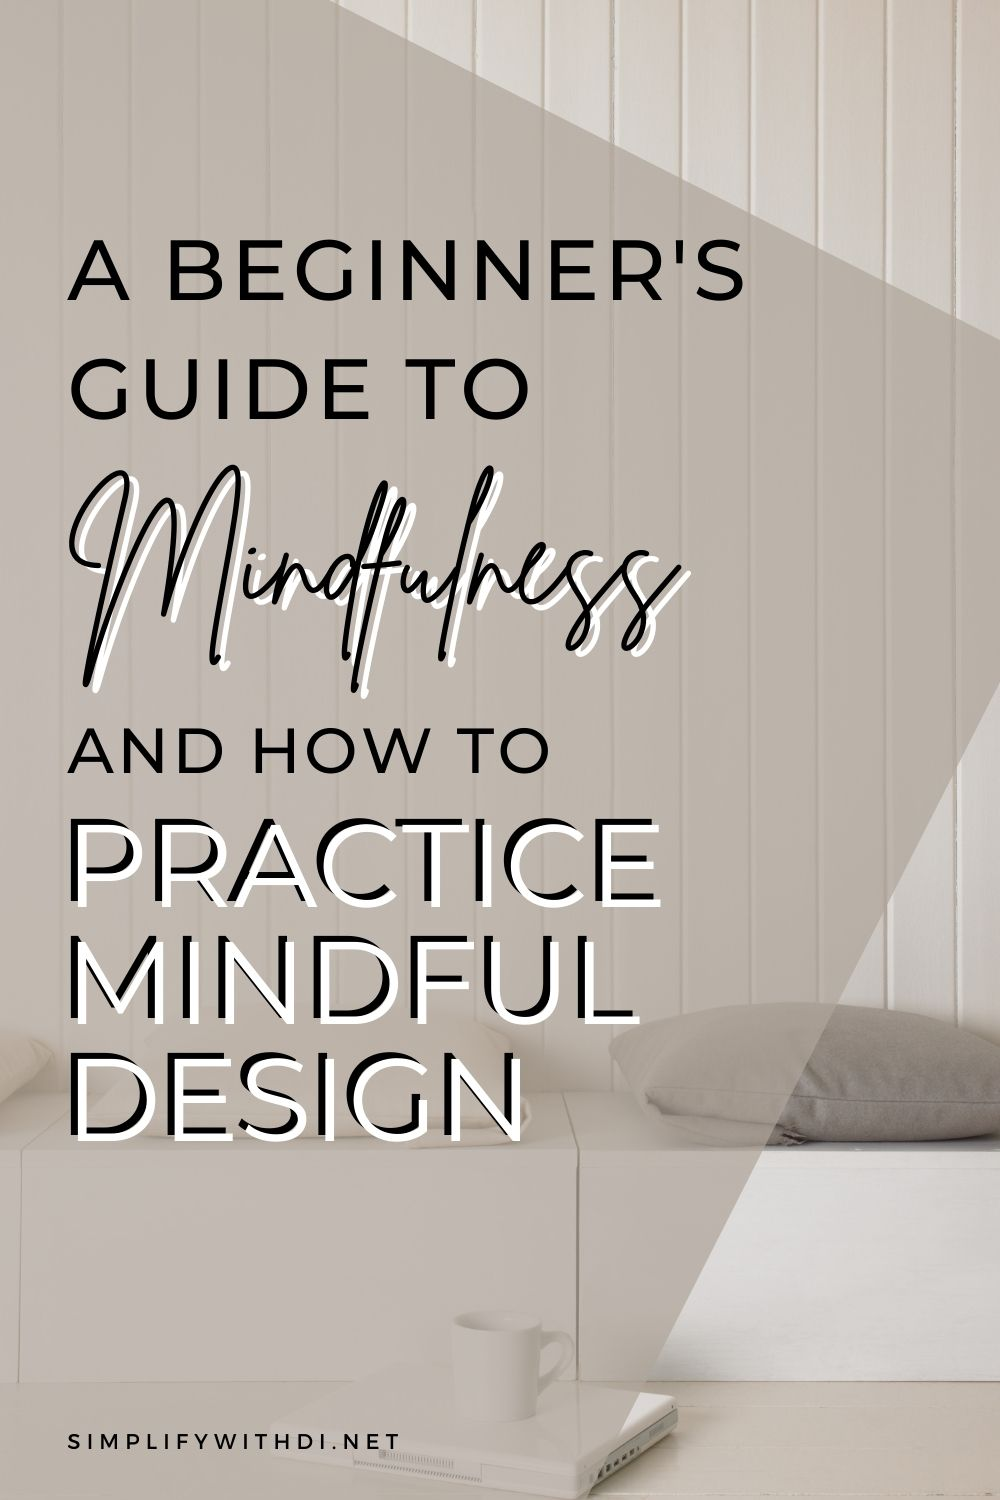 a beginner's guide to mindfulness and how to practiced mindful design